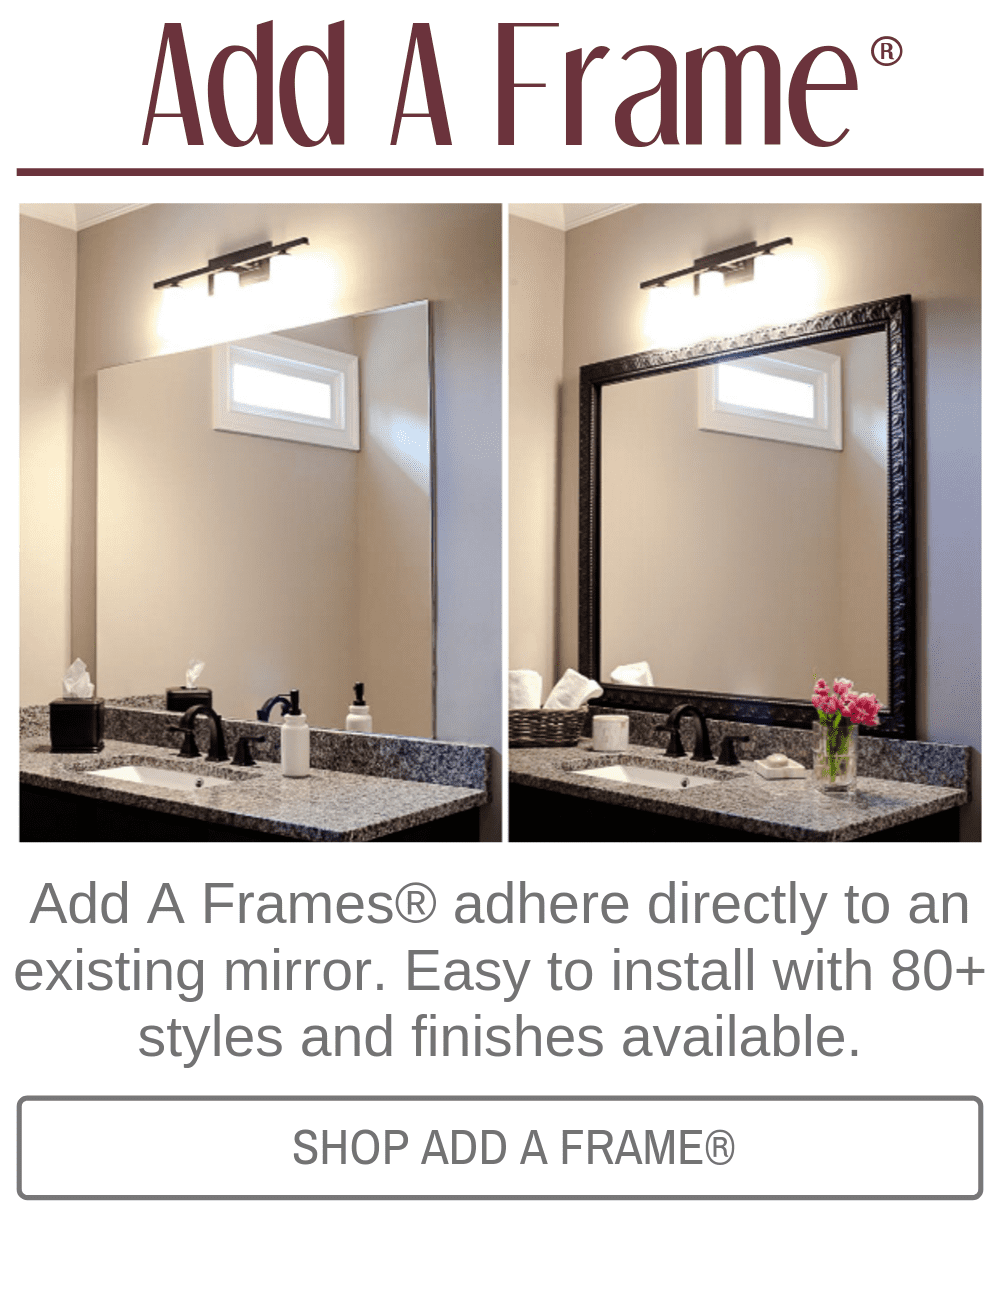 Custom DIY Bathroom Mirror Frame Kits (With images ...